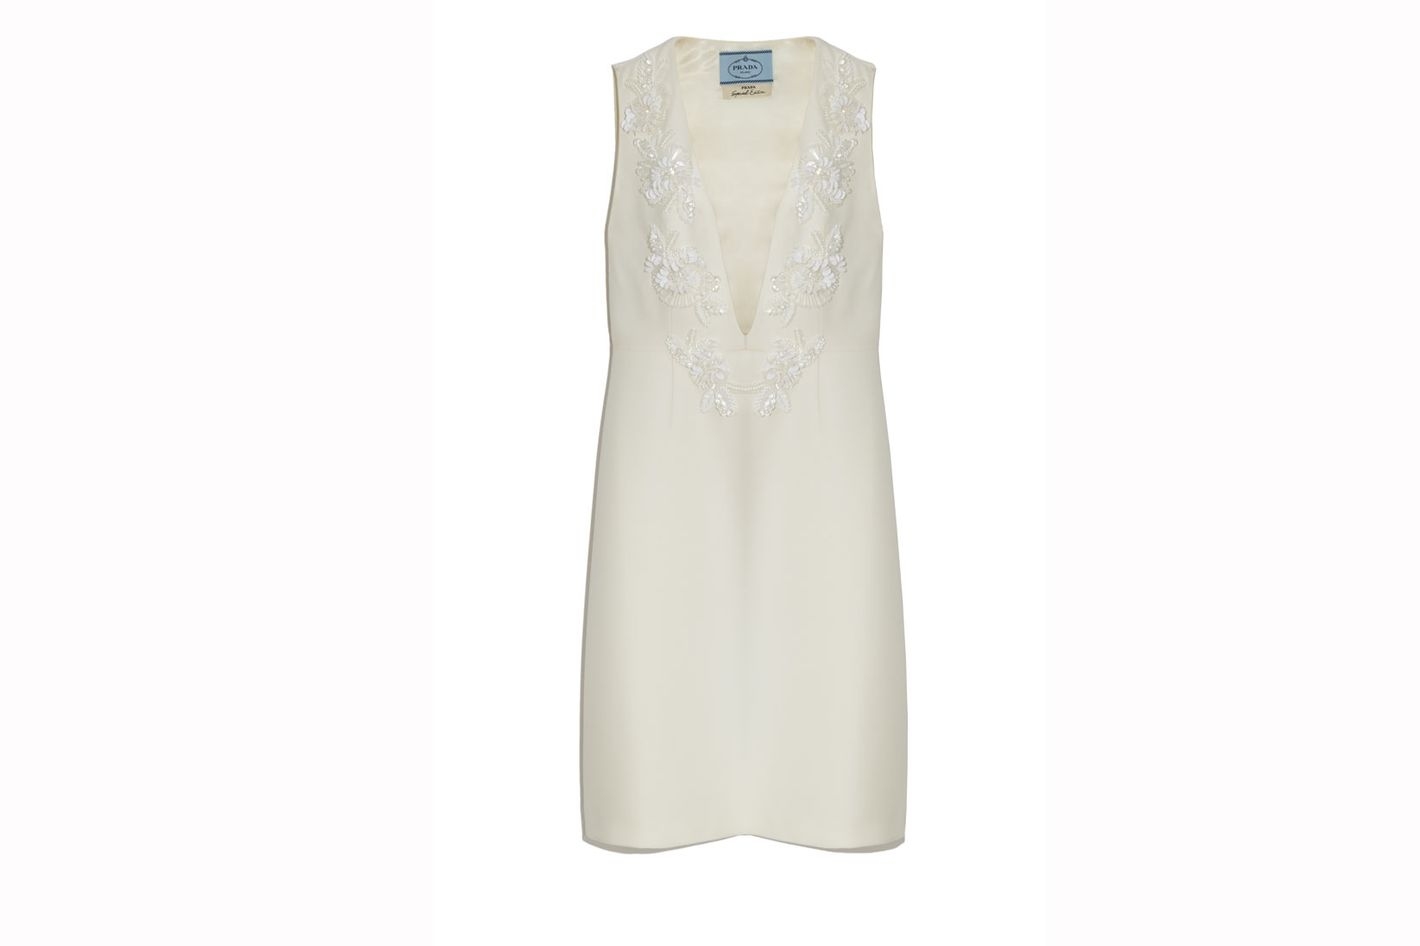 Prada Embroidered Plunging V-Neck Sheath Dress